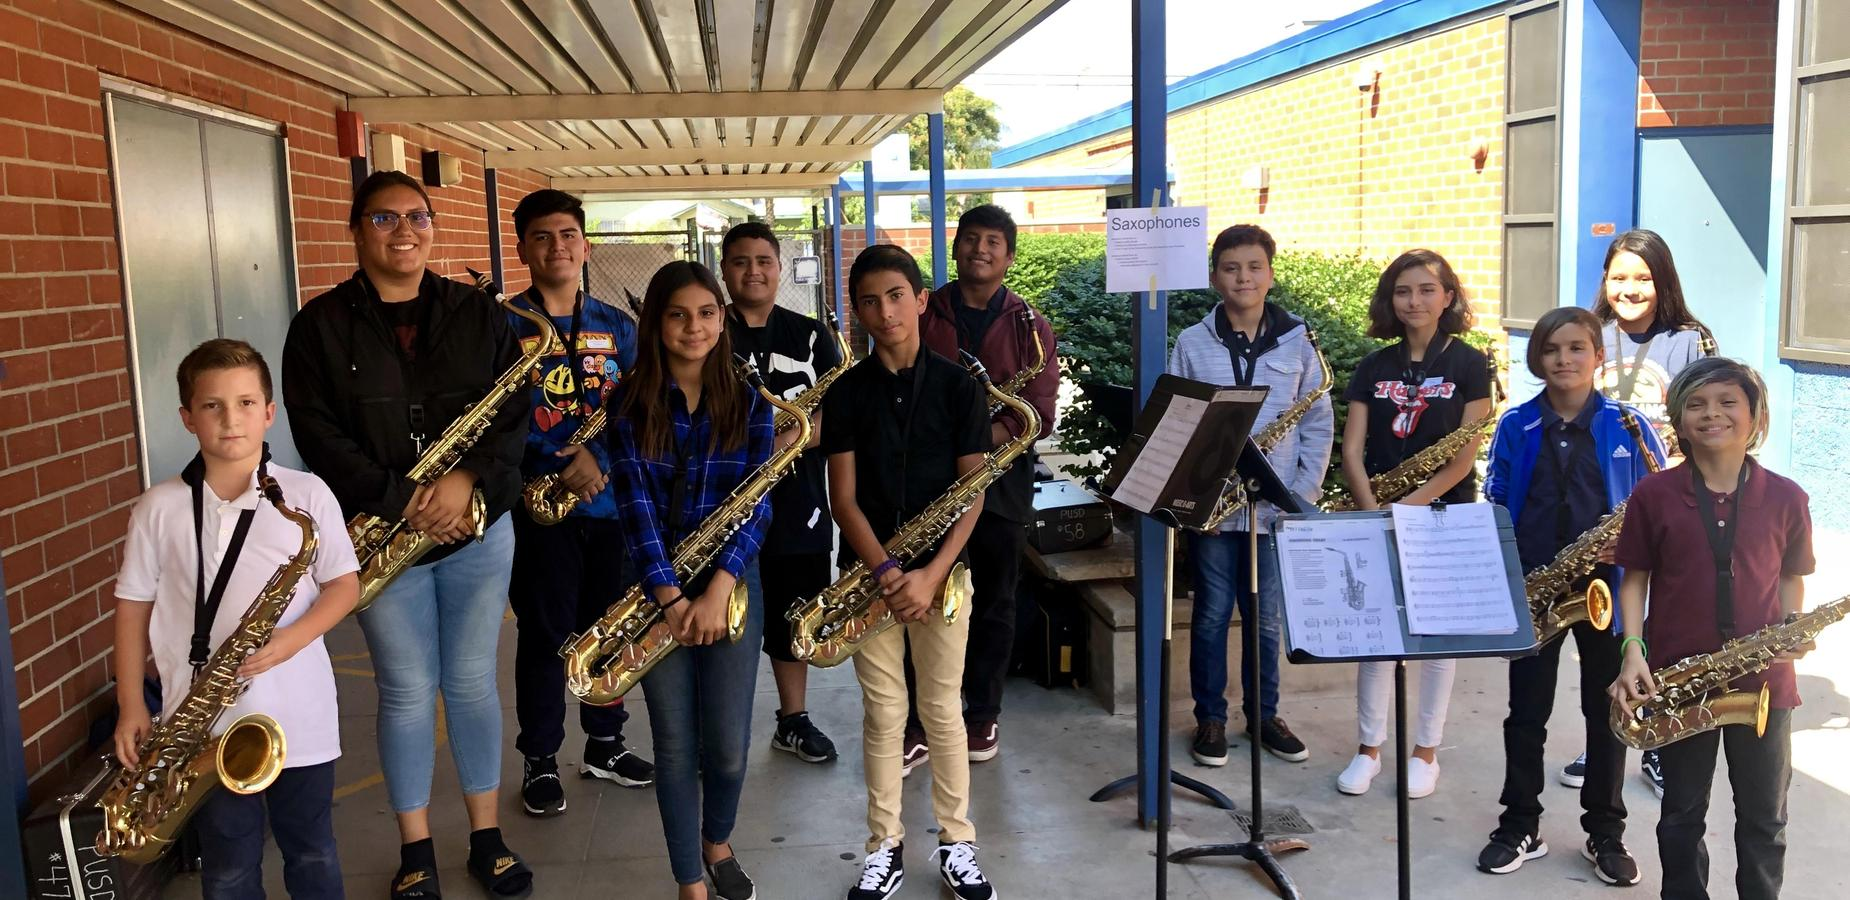 Garey High School Music Students tutored 130 of Simons aspiring musicians! We have invited them to come again on October 30th. #Proud2bepusd http://edl.io/n1108973